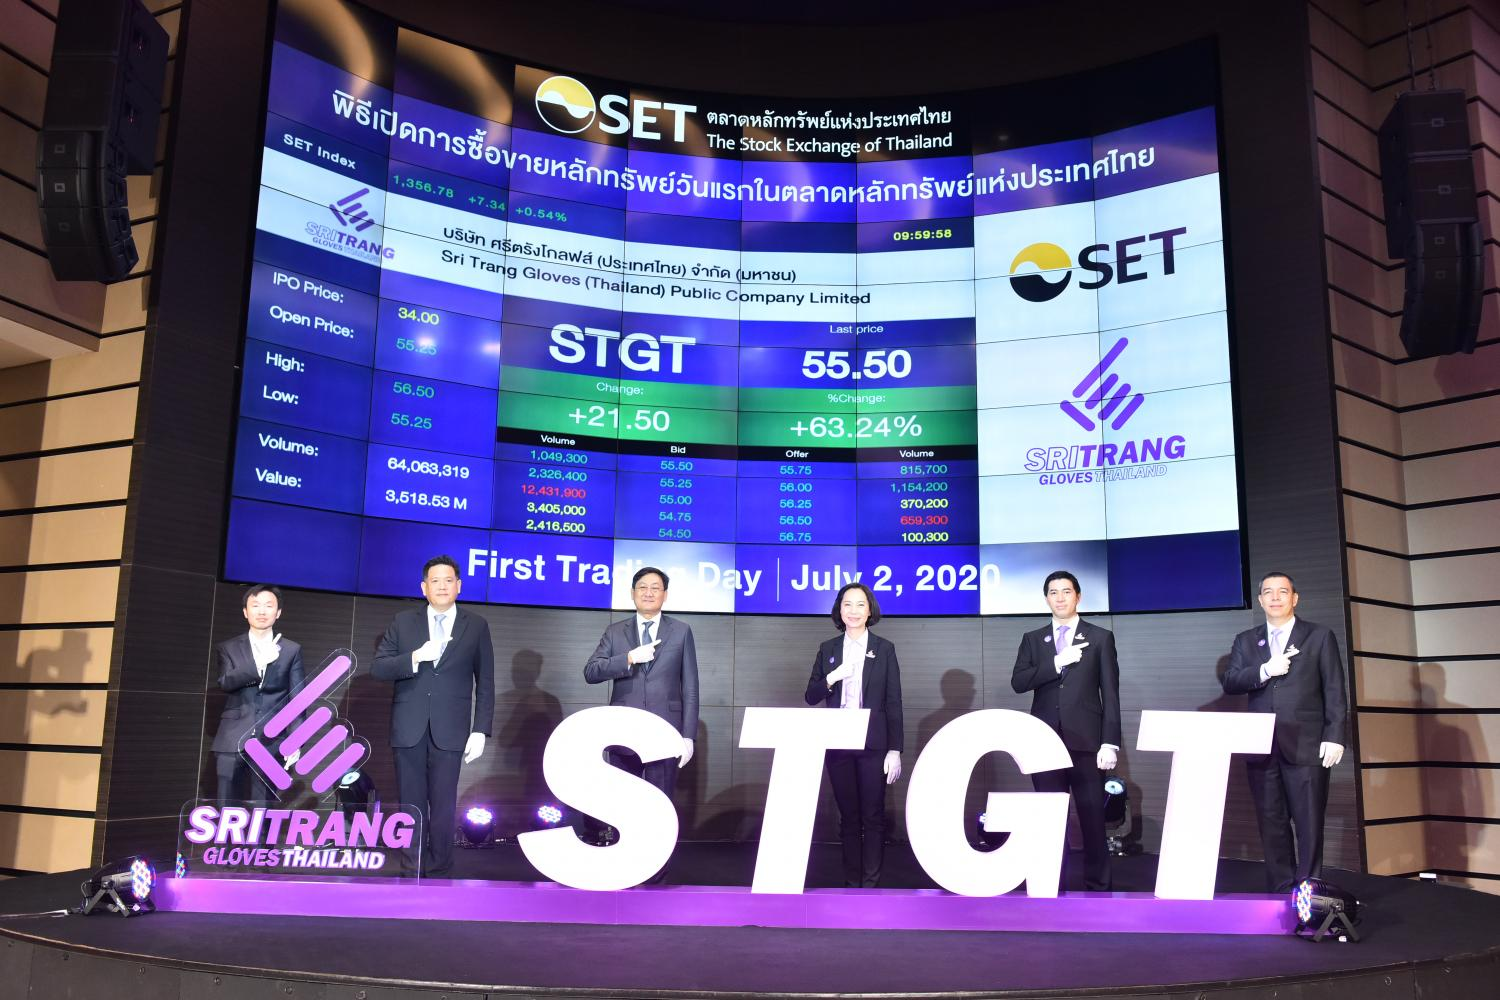 Ms Jarinya (centre right) and SET president Pakorn Peetathawatchai (centre left) share the SET stage on STGT's first day of trading.